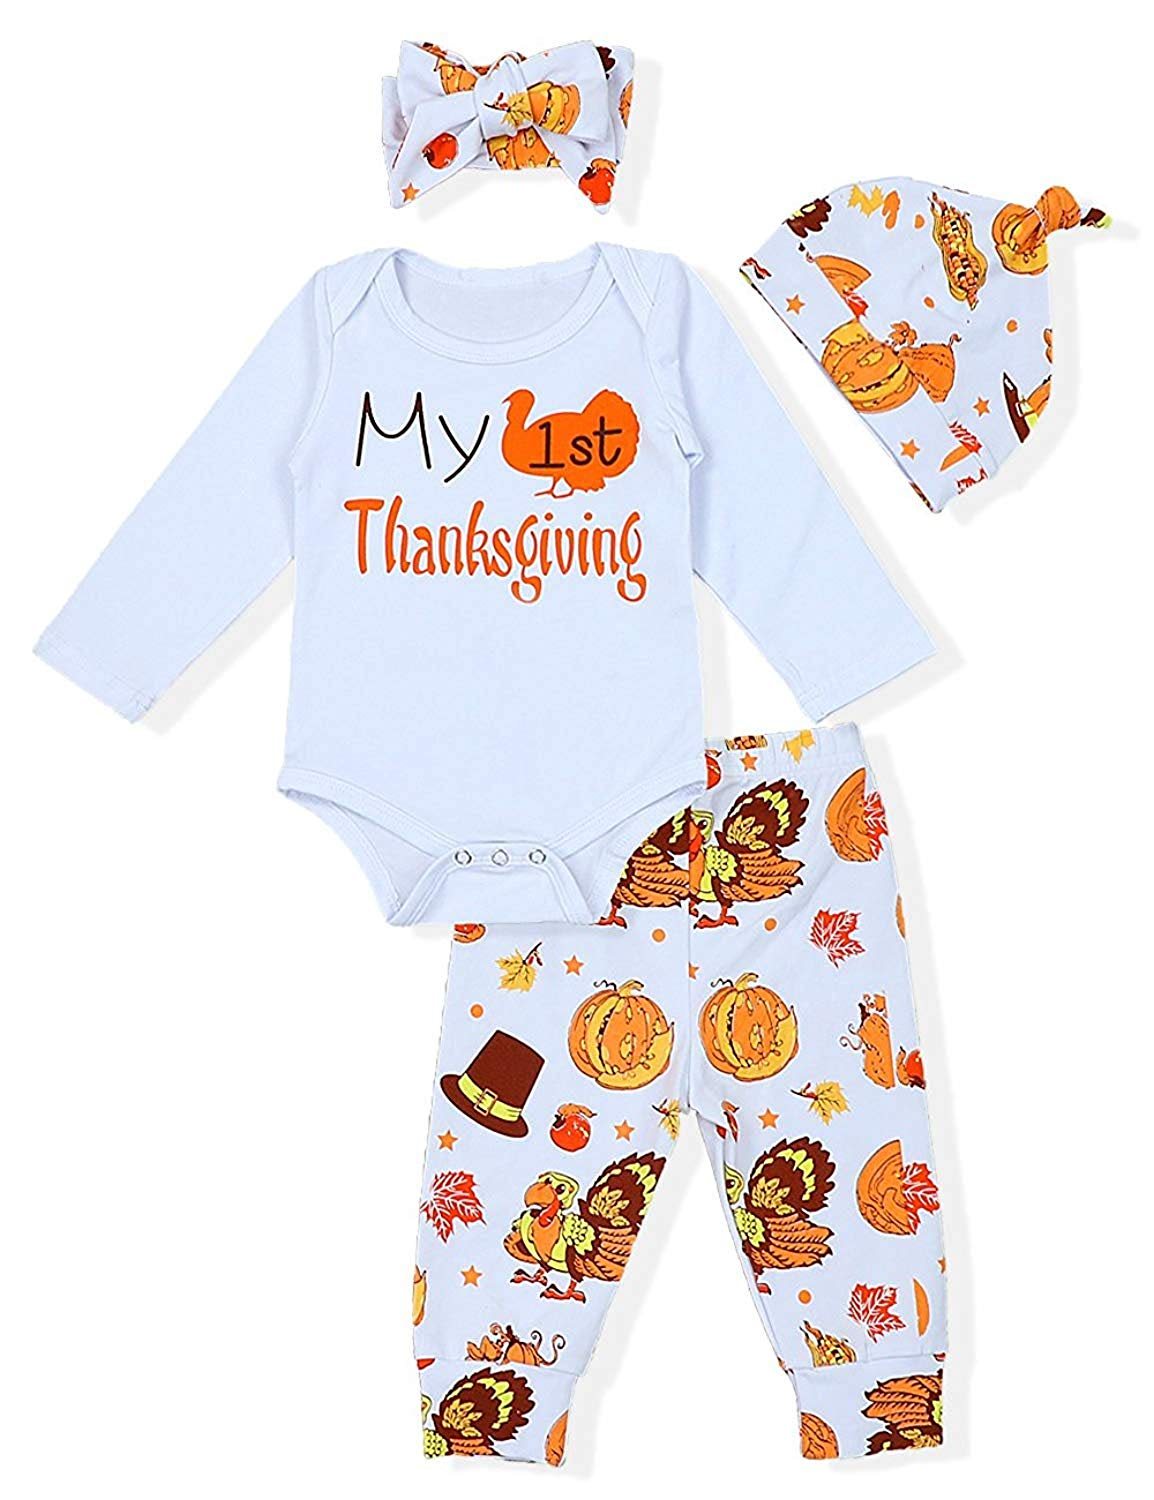 5a2930ff6489 Get Quotations · Baby Boy Girl Thanksgiving Outfit My 1st Thanksgiving  Print Bodysuit+Hat and Headband Turkey Pant